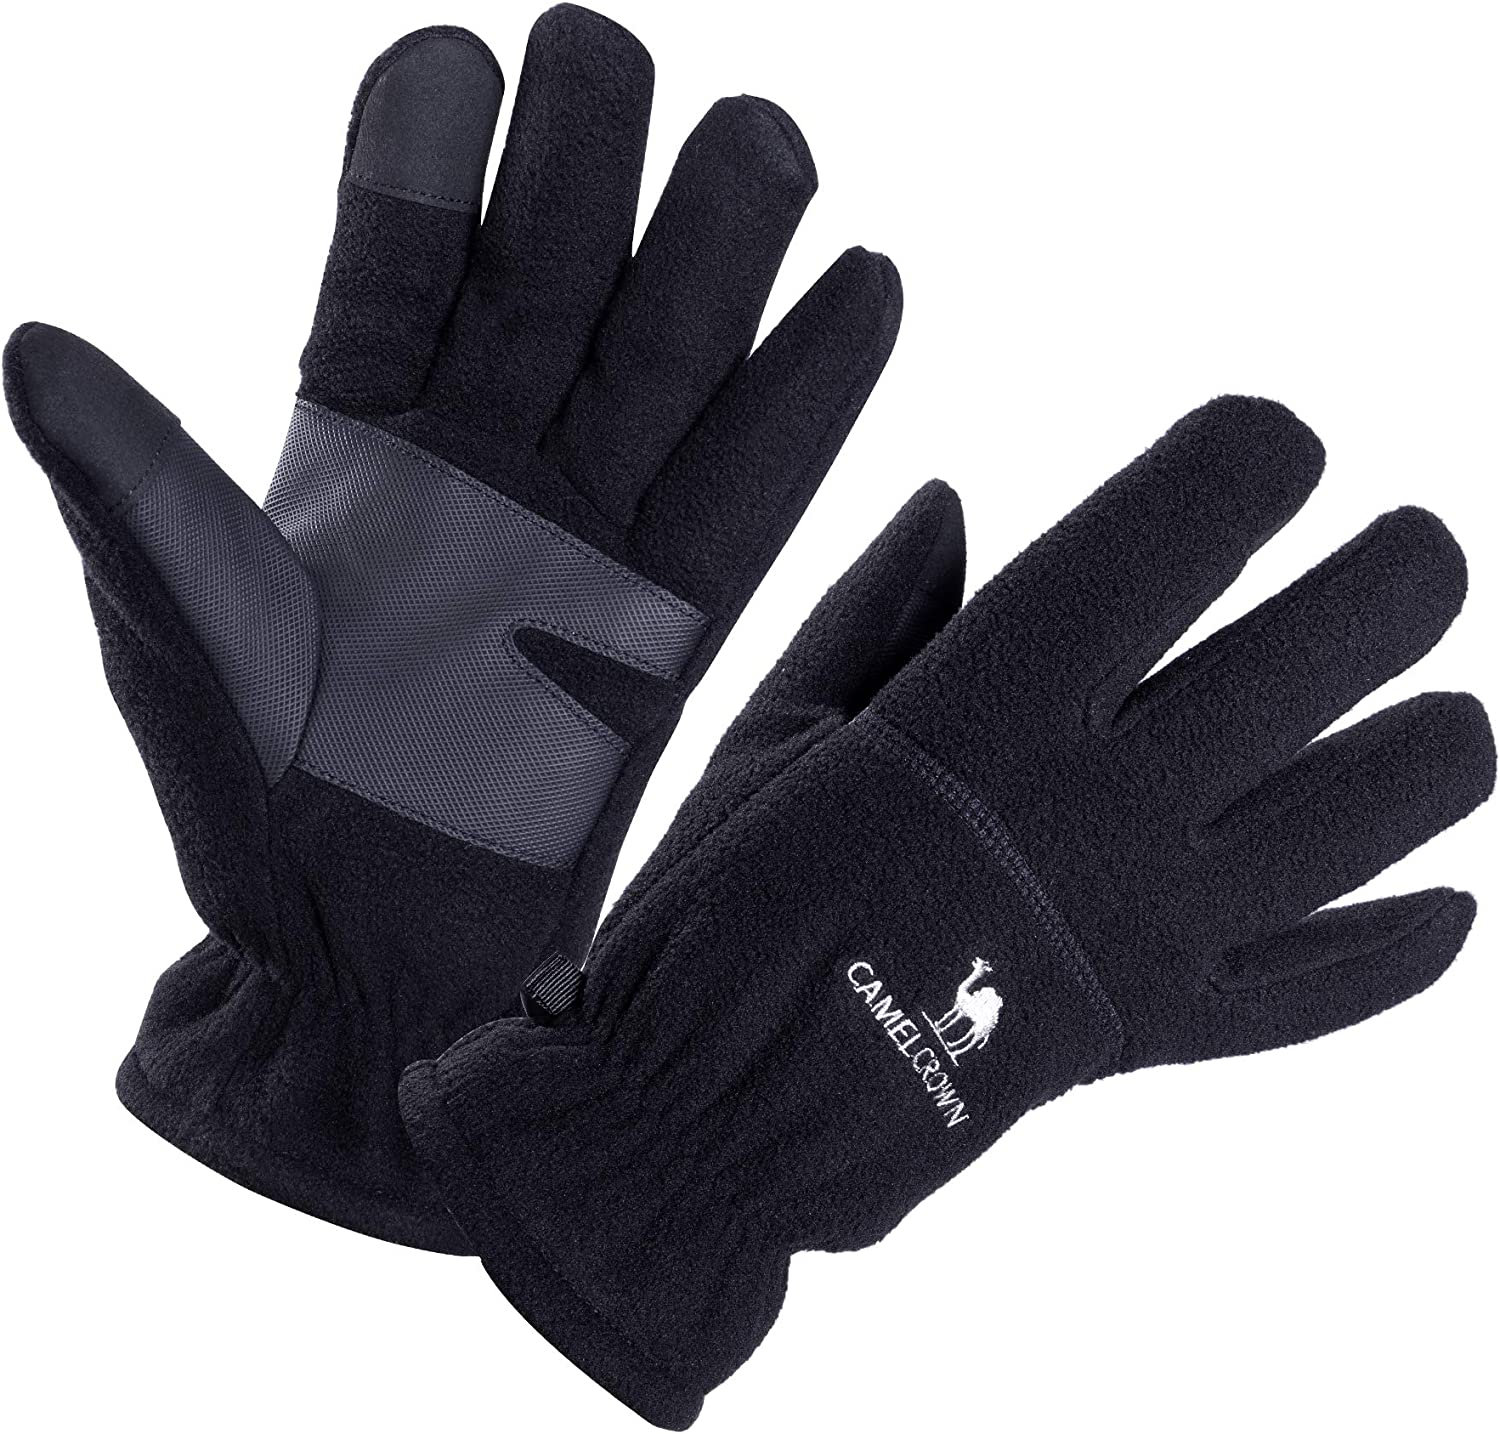 CAMEL CROWN Winter Gloves Touch Screen Anti-Slip Gloves Windproof Warm for Driving Cycling Running